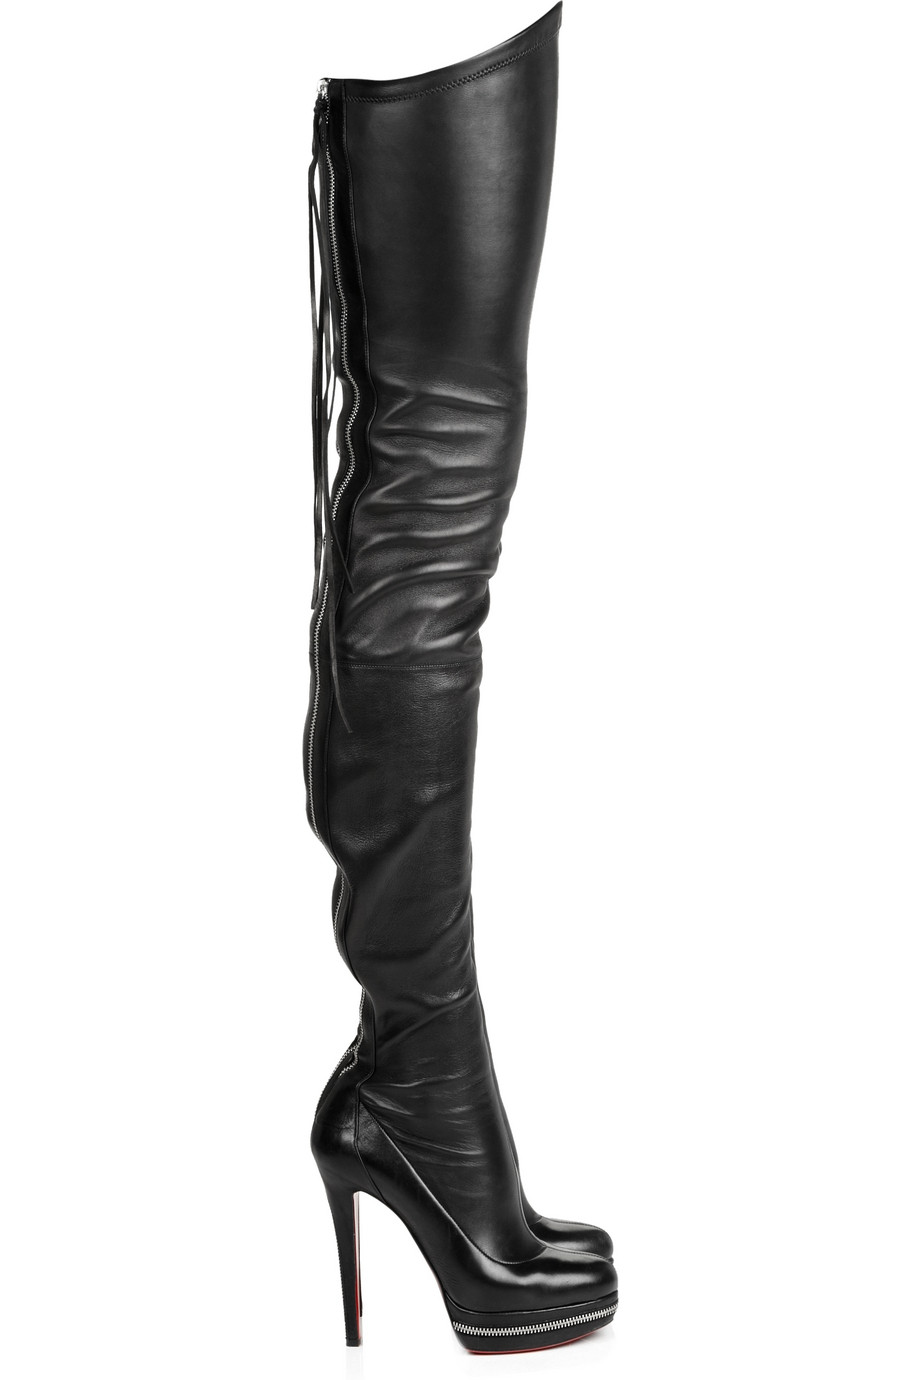 Christian Louboutin Unique 140 Leather Boots In Black Lyst